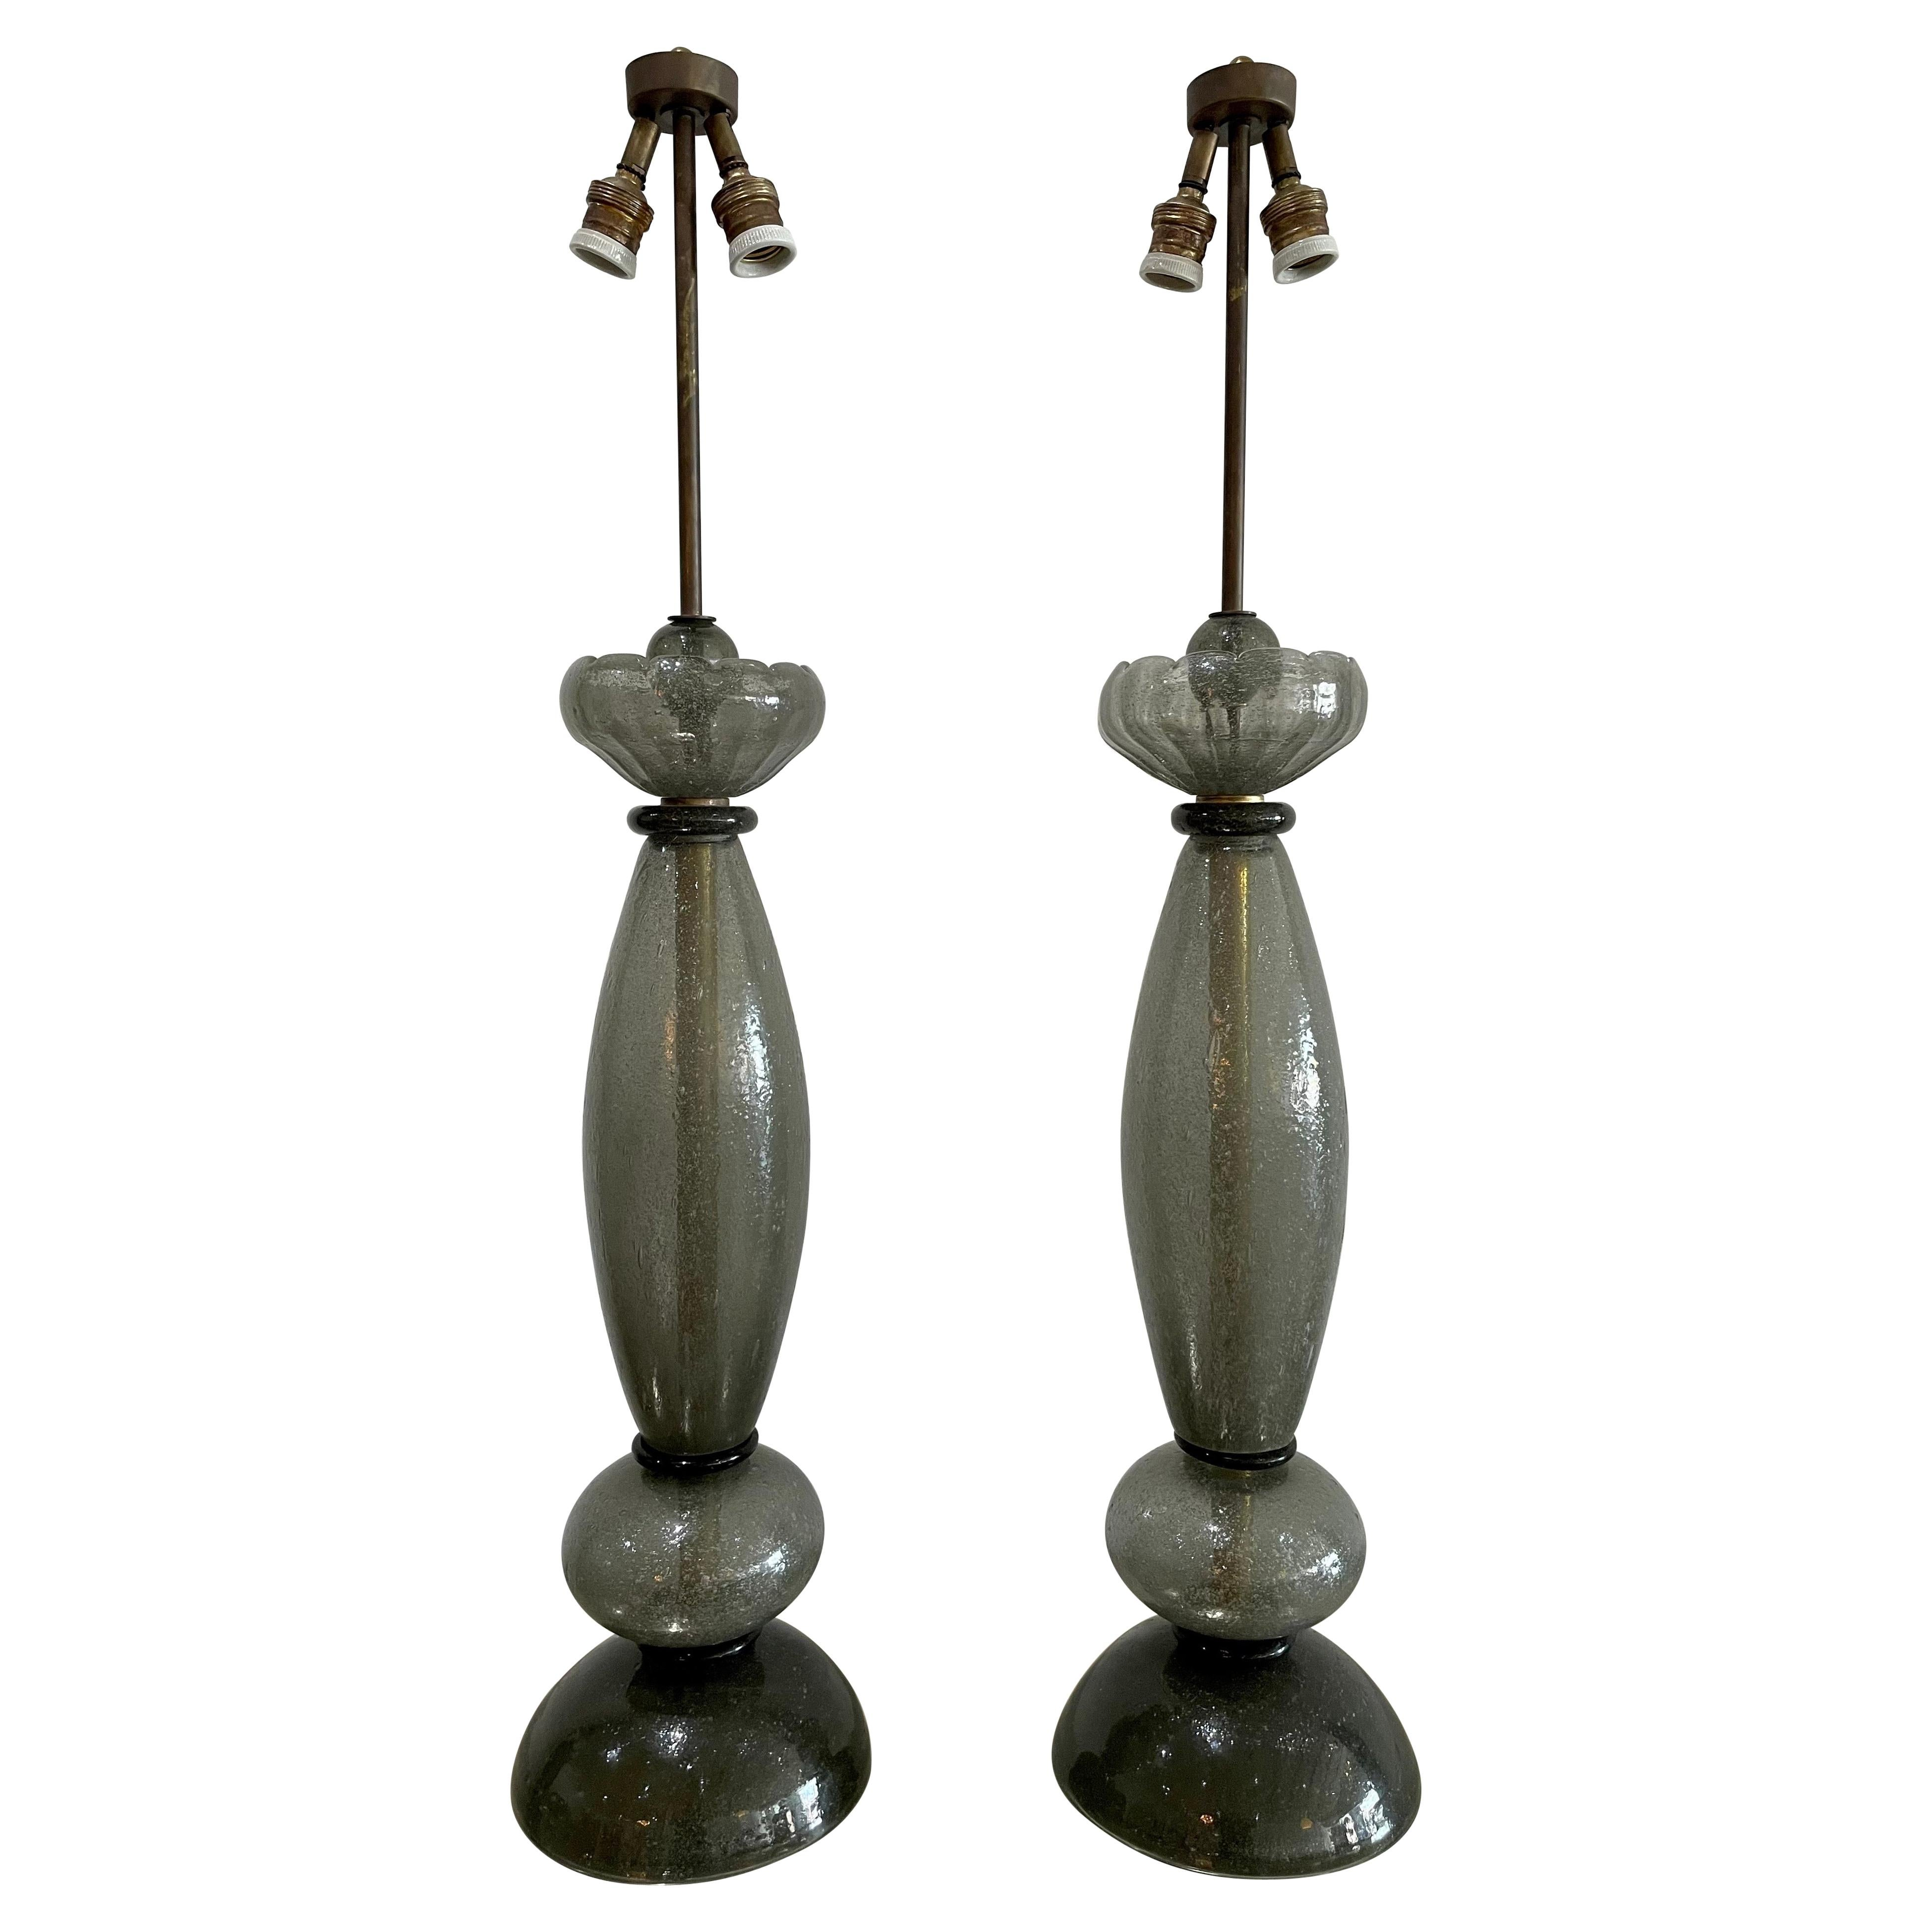 Vintage Barovier e Toso Signed Tall Gray Murano Lamps, Pair